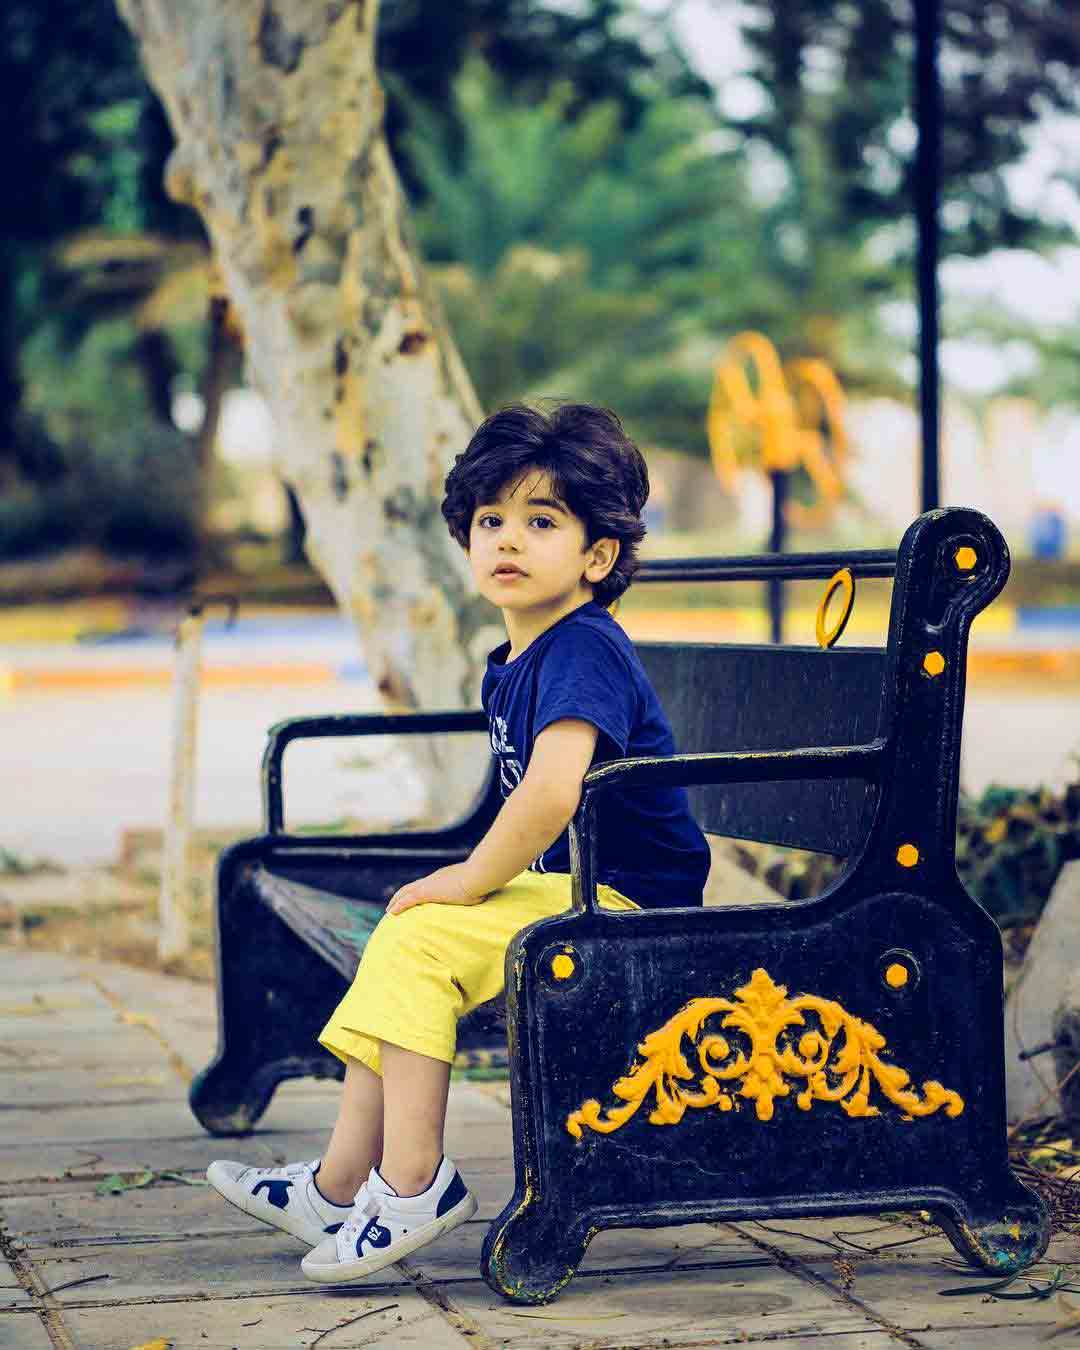 Cute Boy Whatsapp Dp Images pictures for downlod